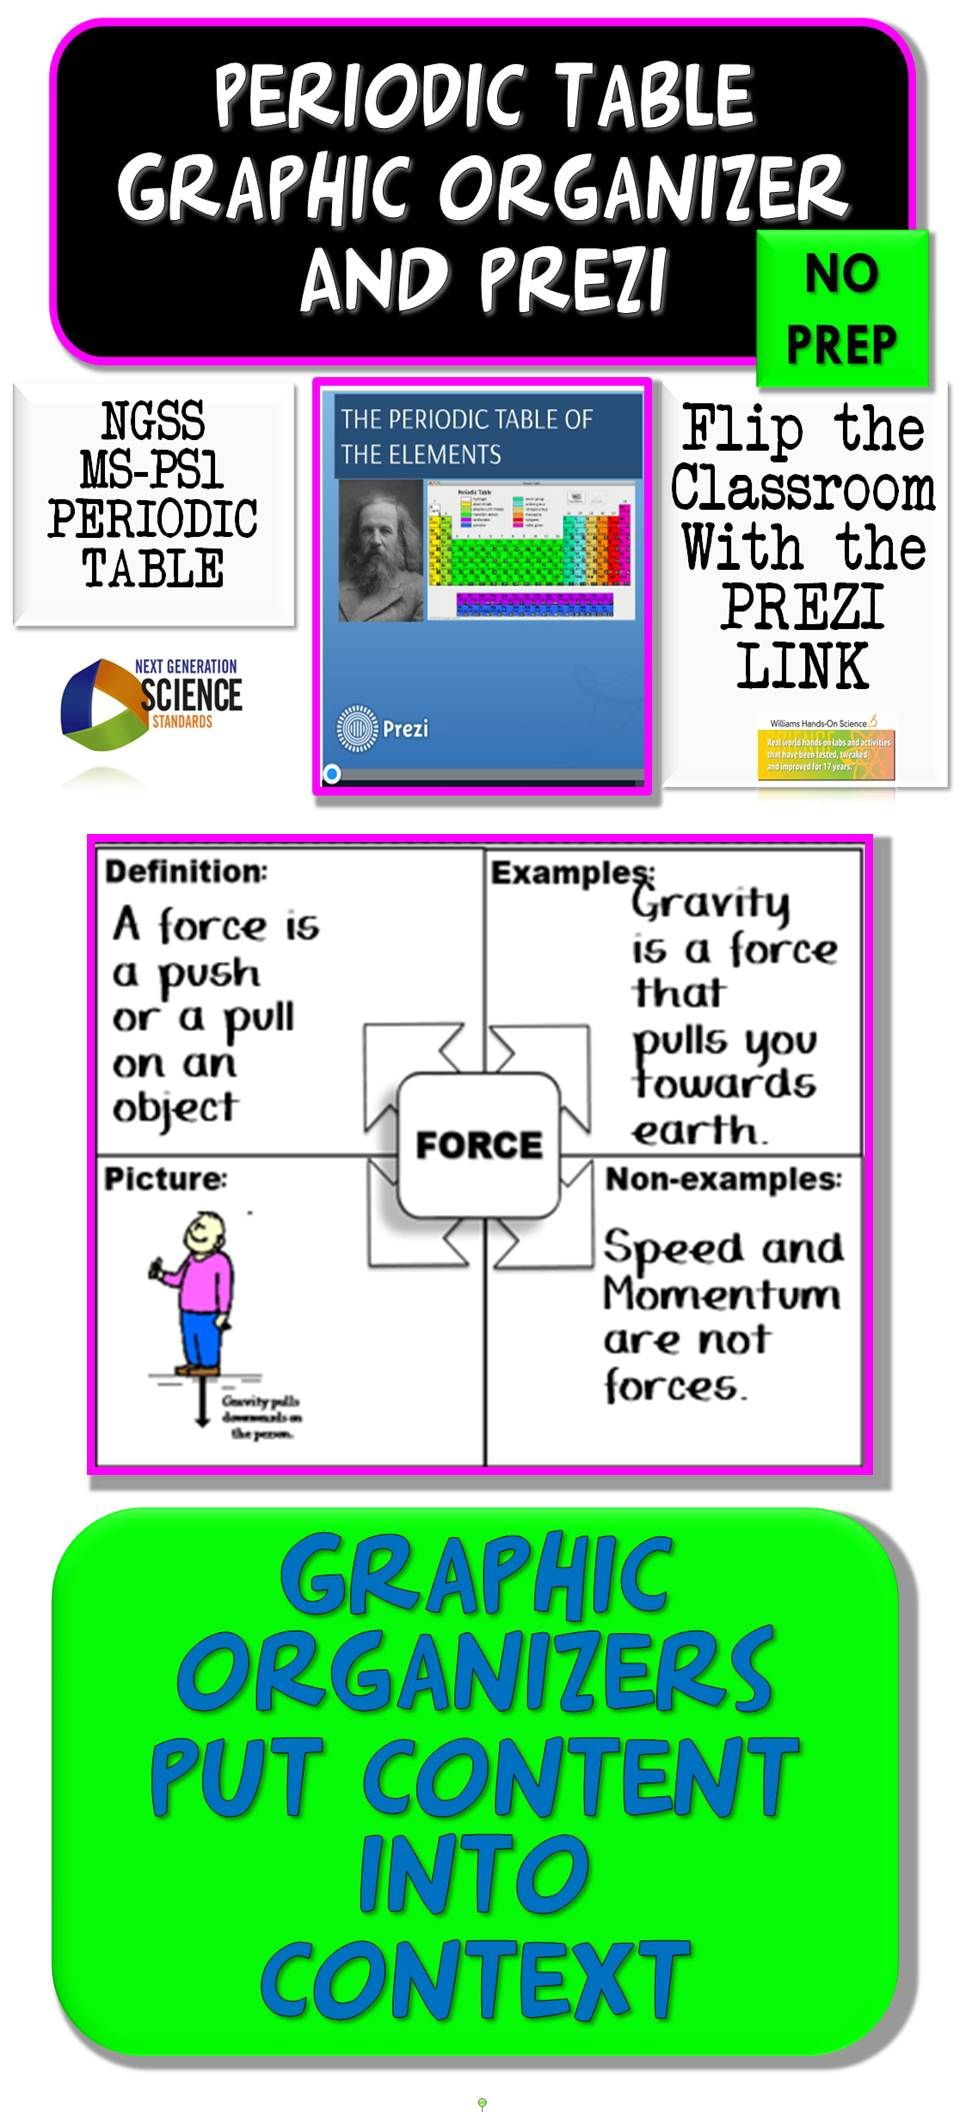 graphic organizer and prezi for periodic table - Periodic Table Lesson For Middle School